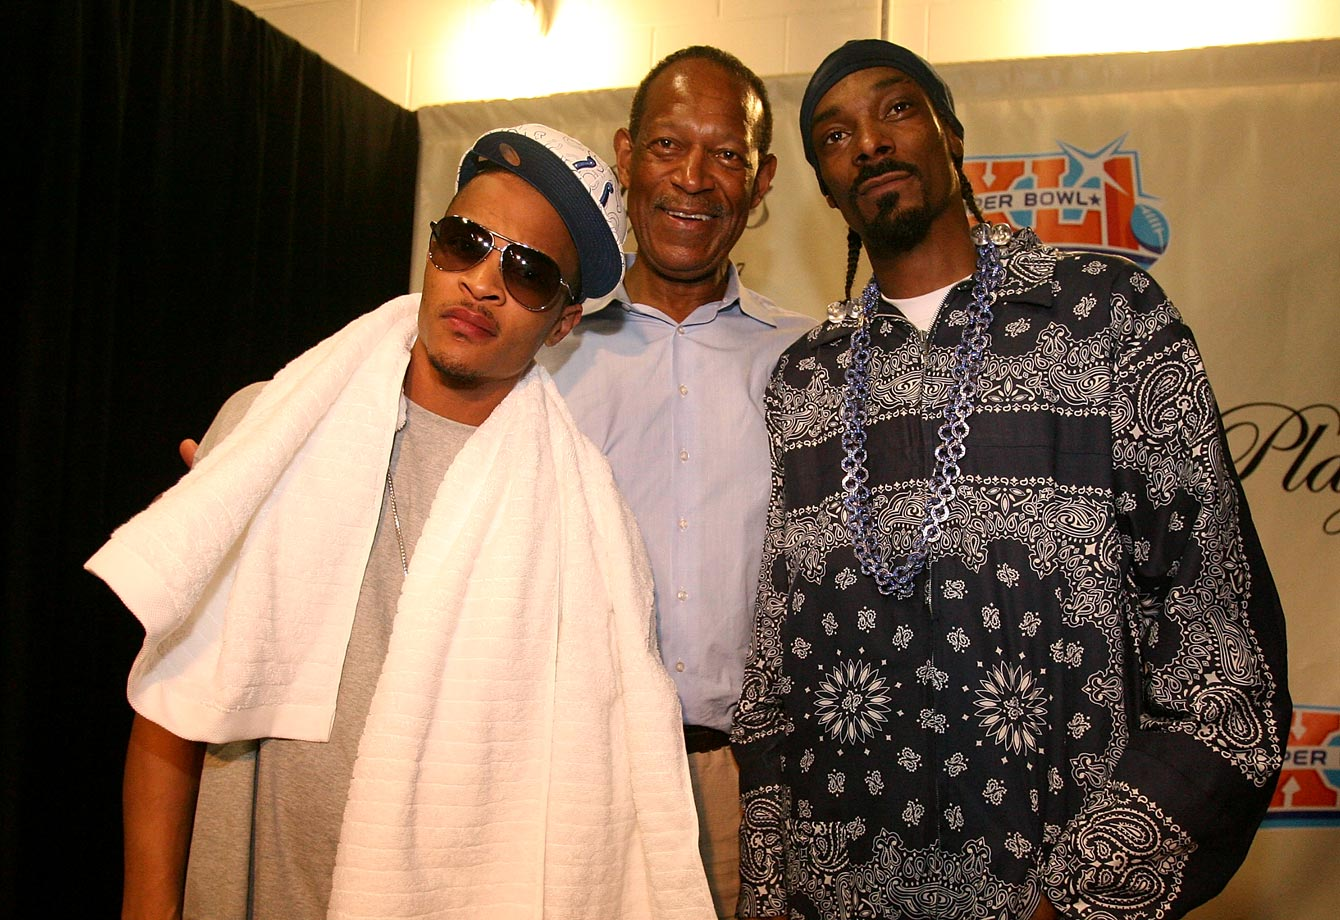 NFLPA Executive Director Gene Upshaw poses for a photo backstage with T.I. and Snoop Dogg at the NFL Players Party on Feb. 2, 2007 at the American Airlines Arena in Miami.